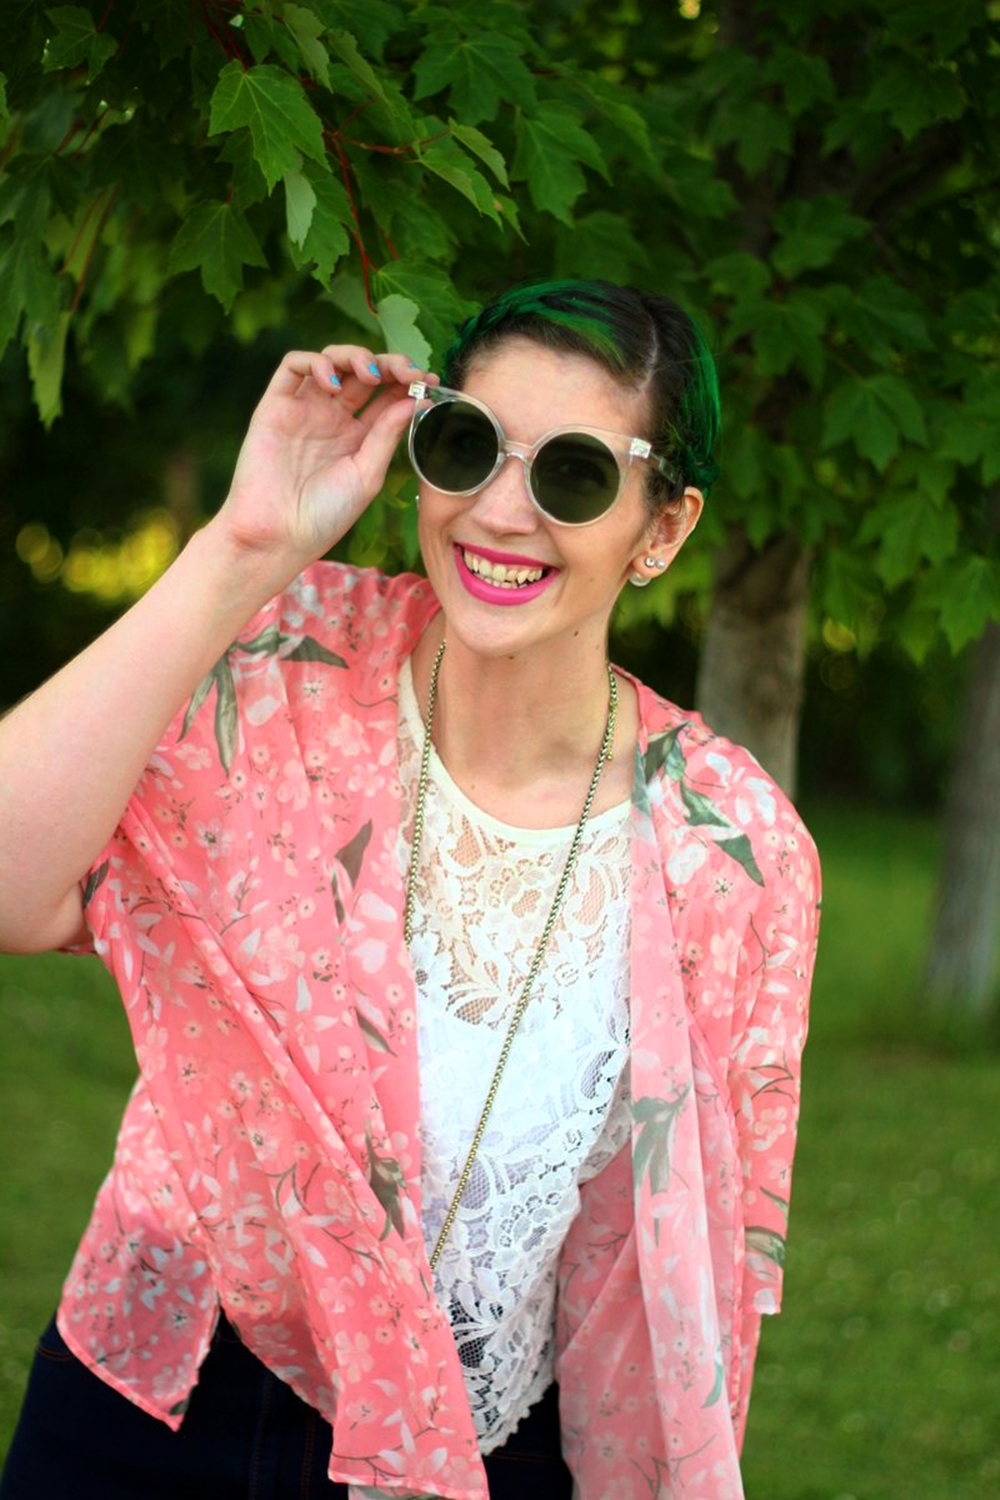 sunglasses-green-hair-pink-kimono-summer-outfit-02